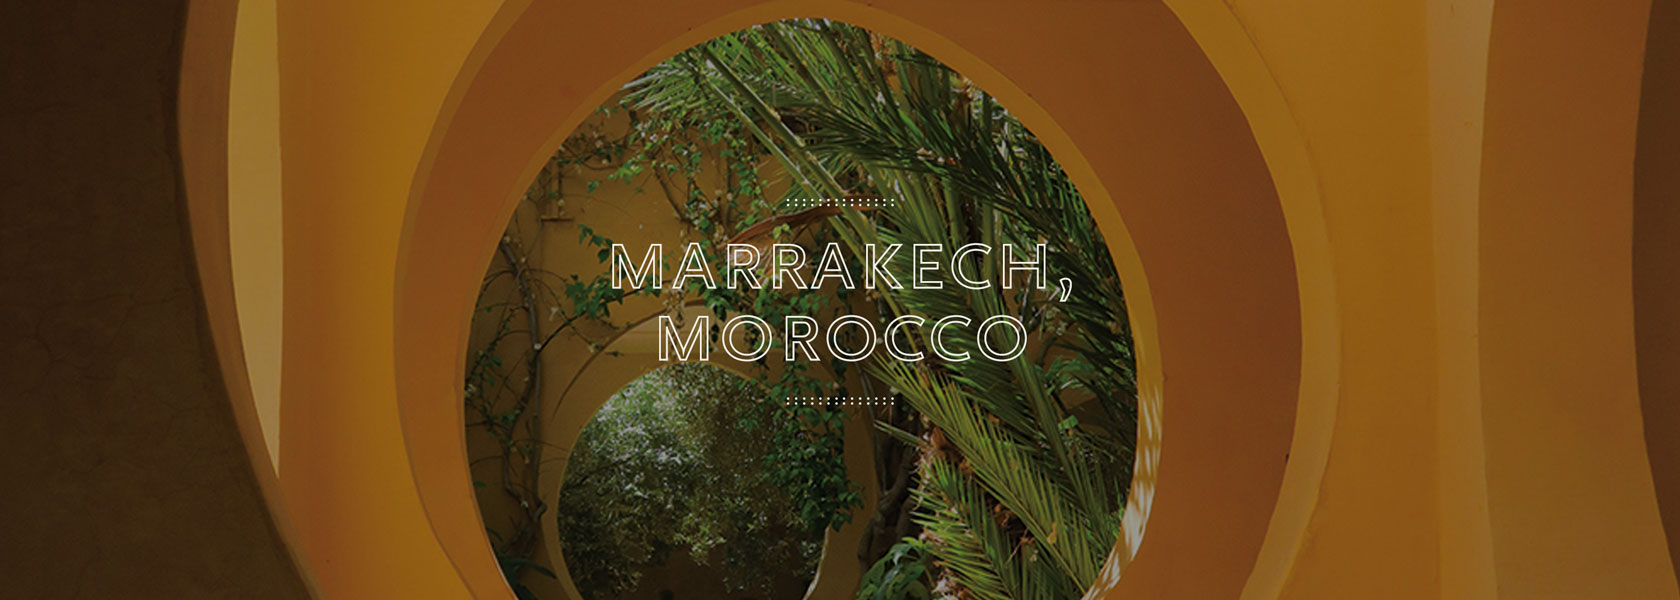 Culinary Tour to Marrakech, Morocco